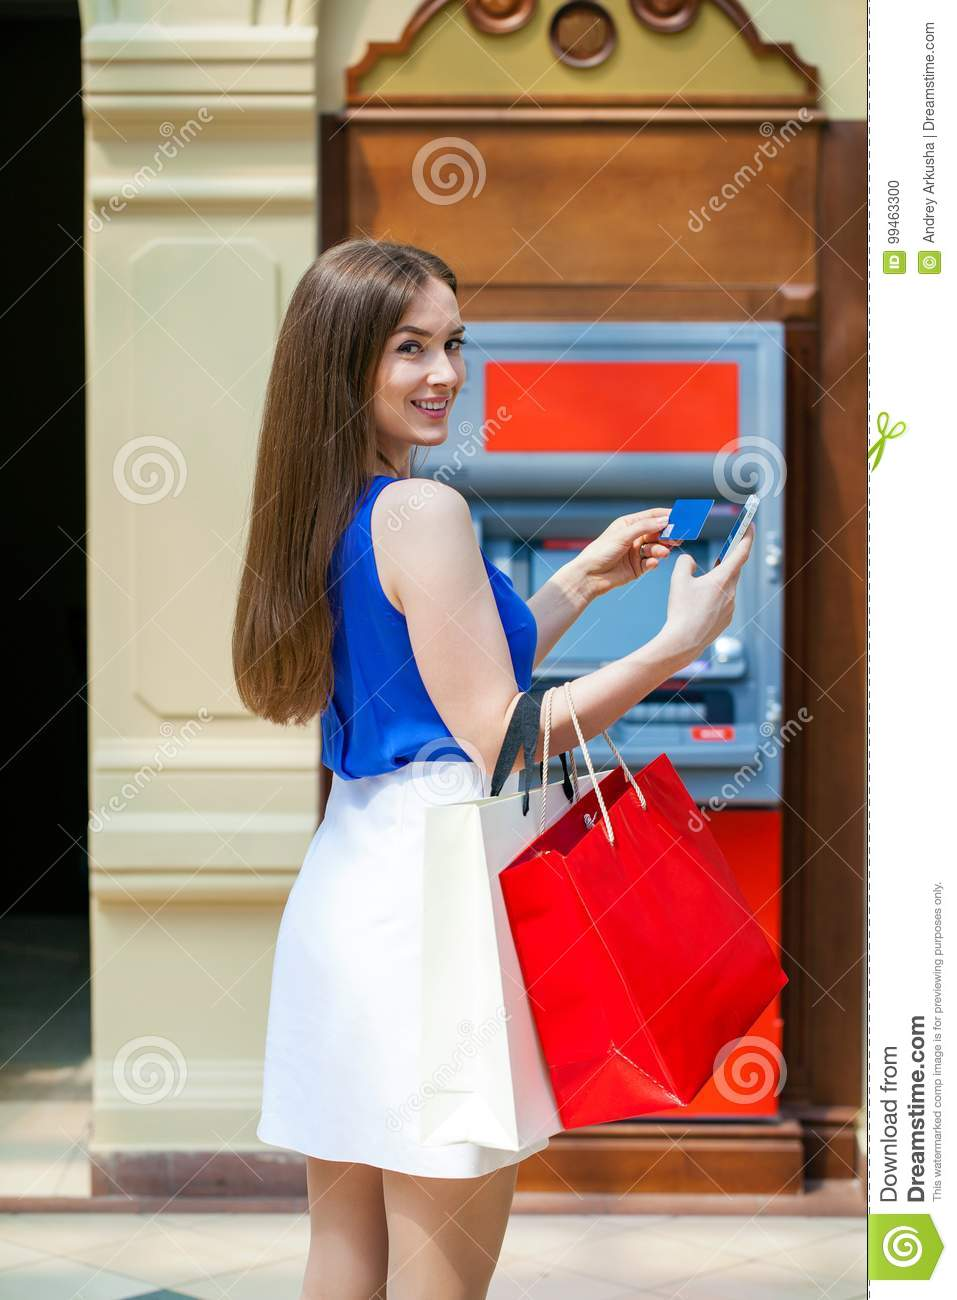 6008f47552b5 Young happy brunette woman withdrawing money from credit card at ATM,  indoor shop